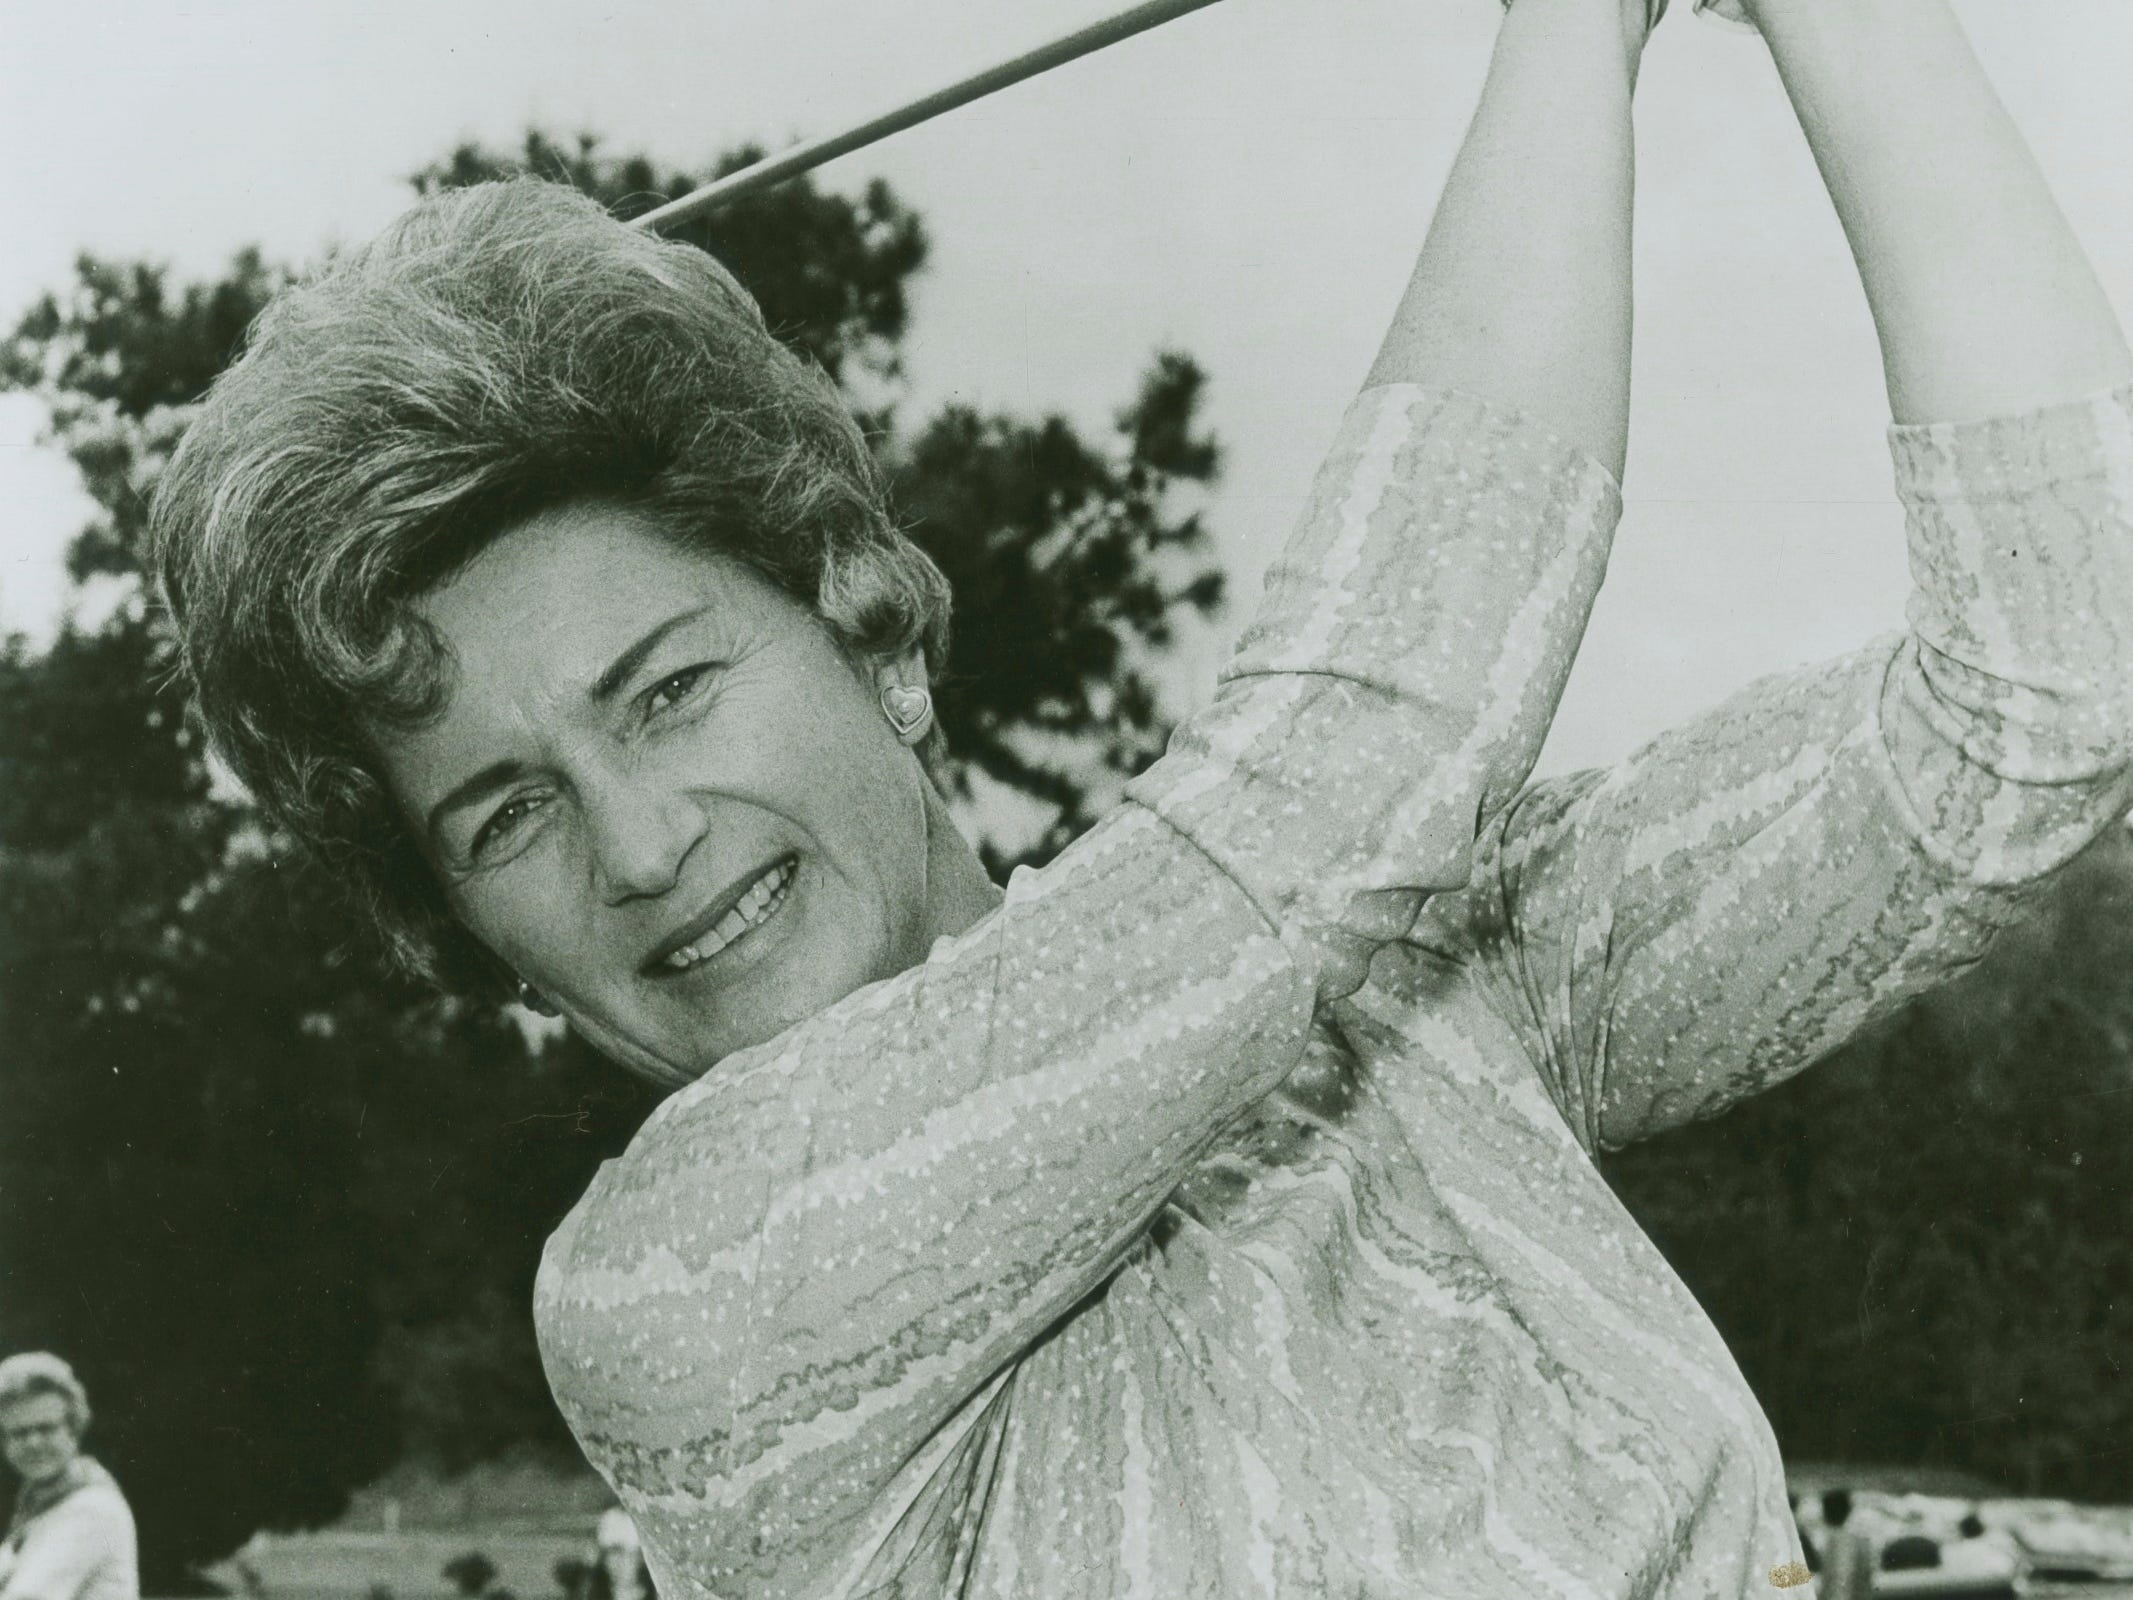 Marilynn Smith, World Golf Hall of Fame member and founder of the LPGA Tour. April 9. She was 89.